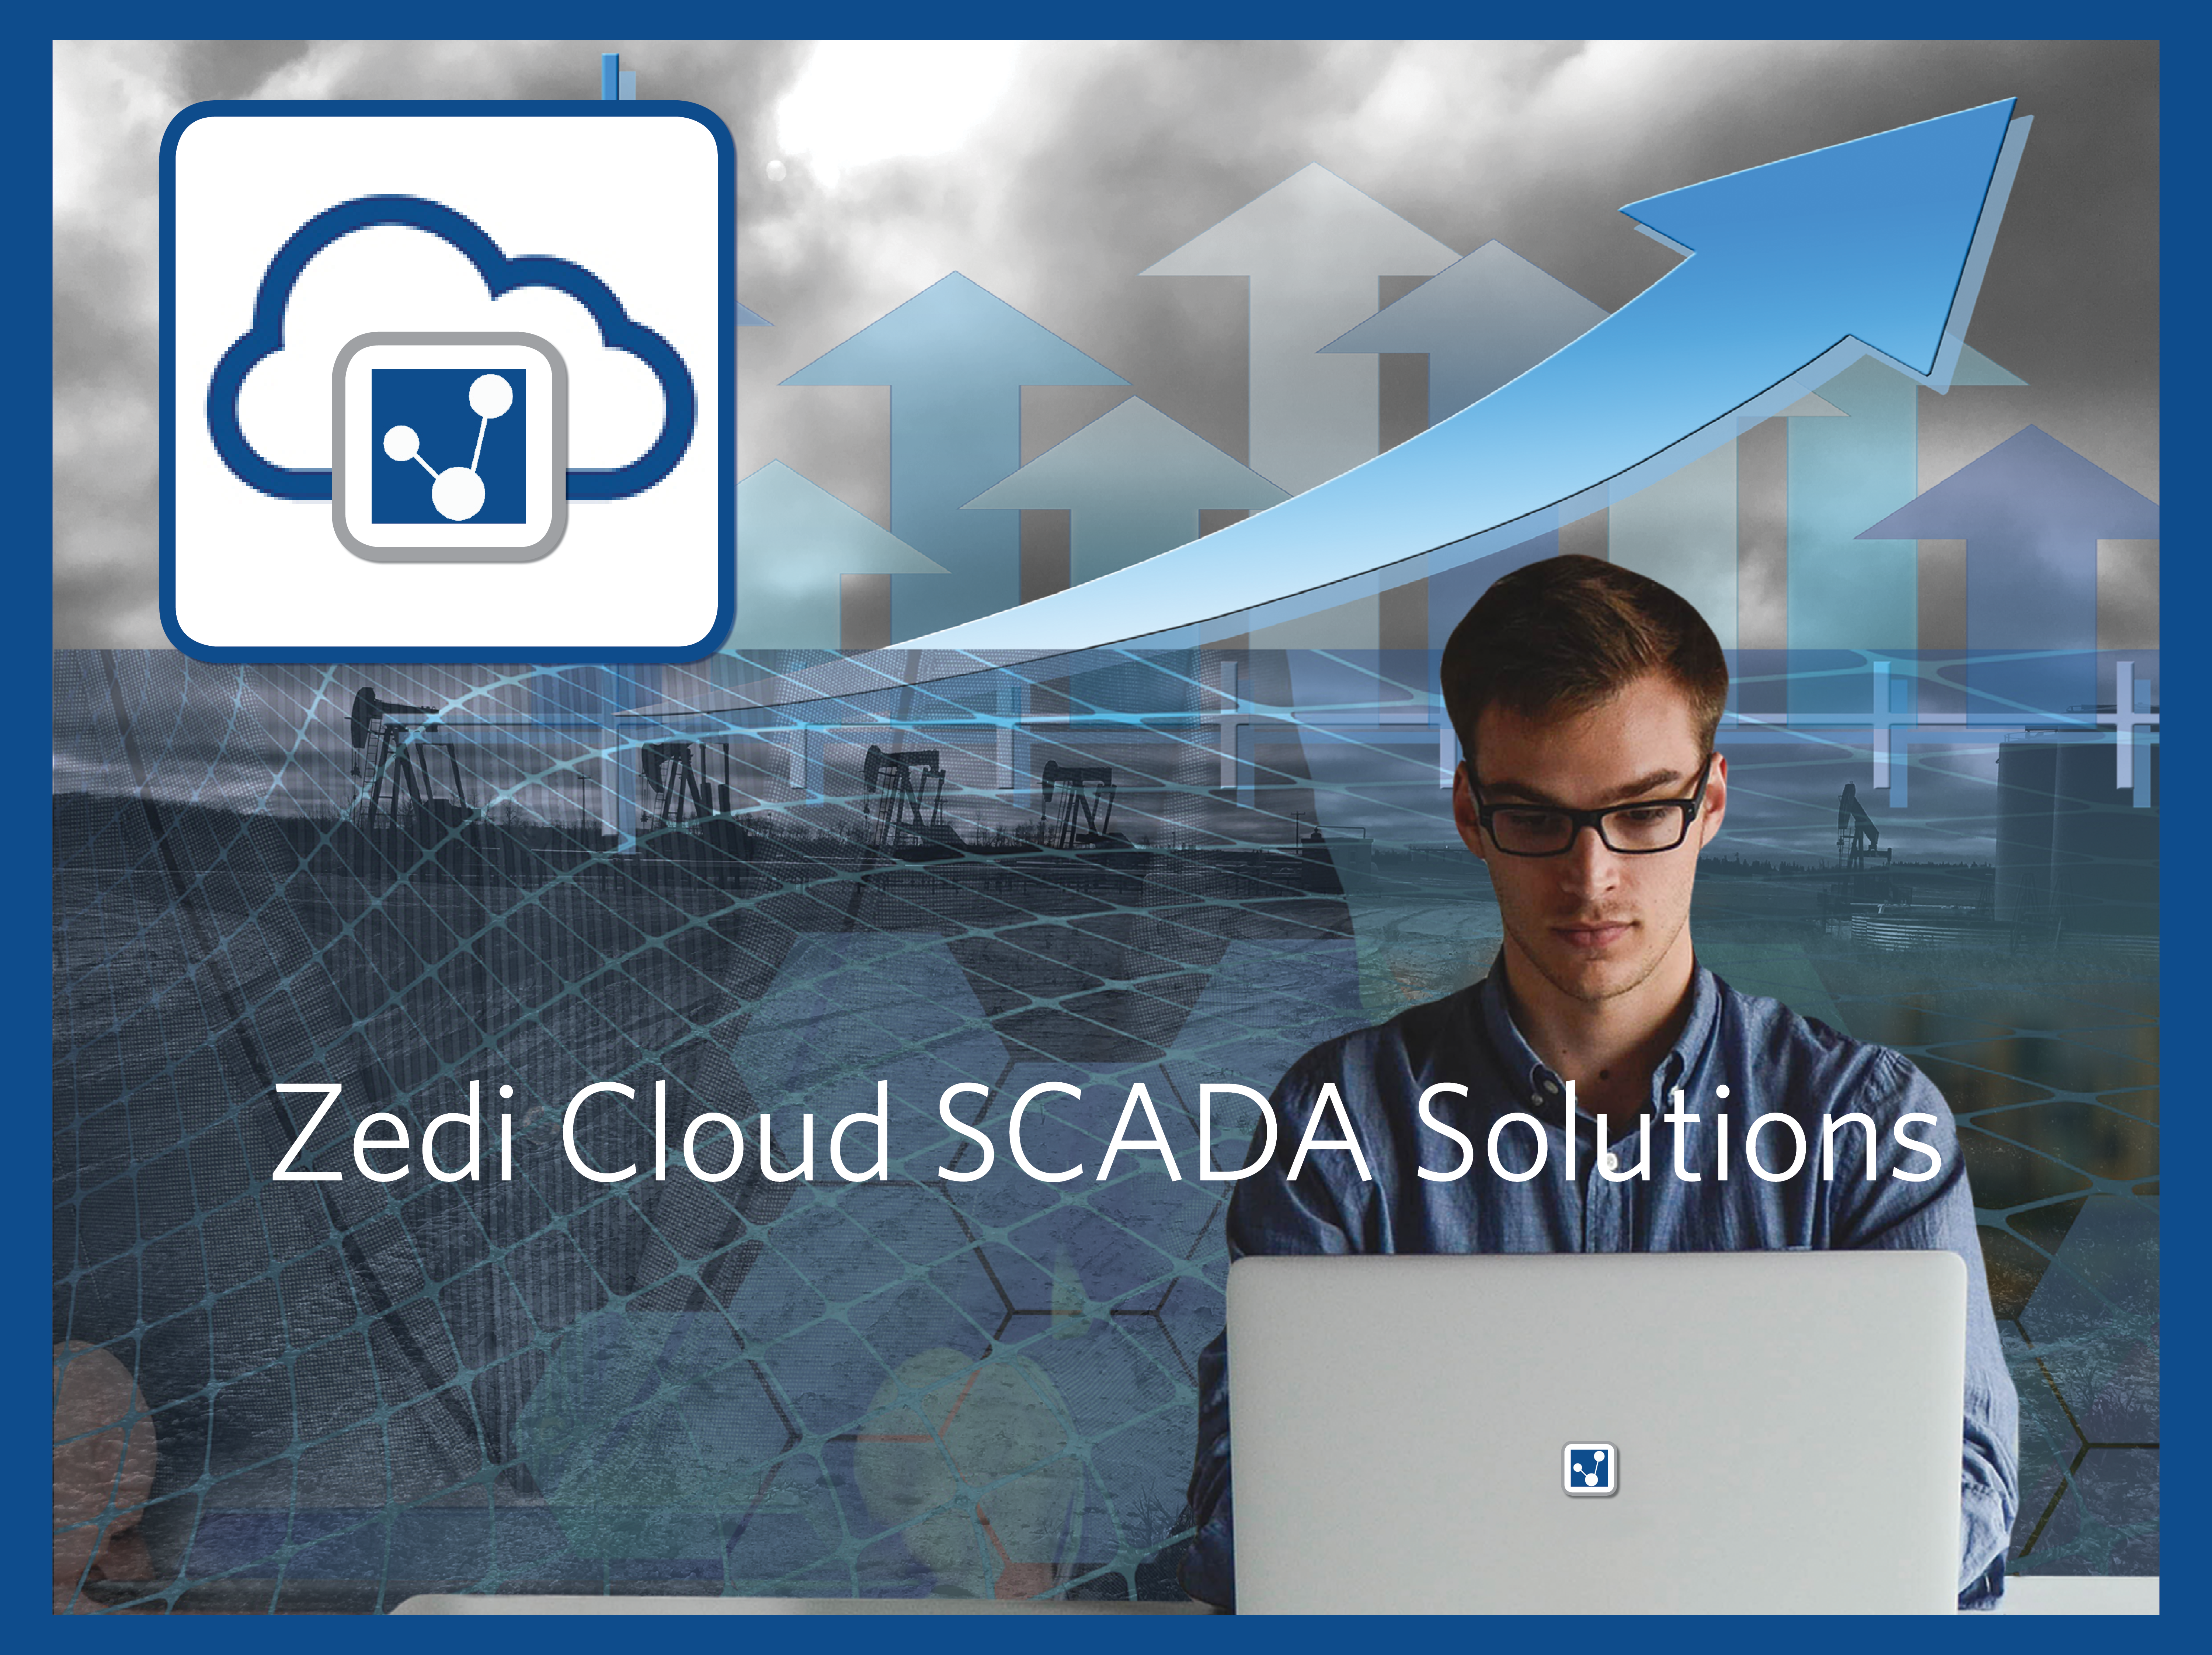 Cloud SCADA oil and gas production